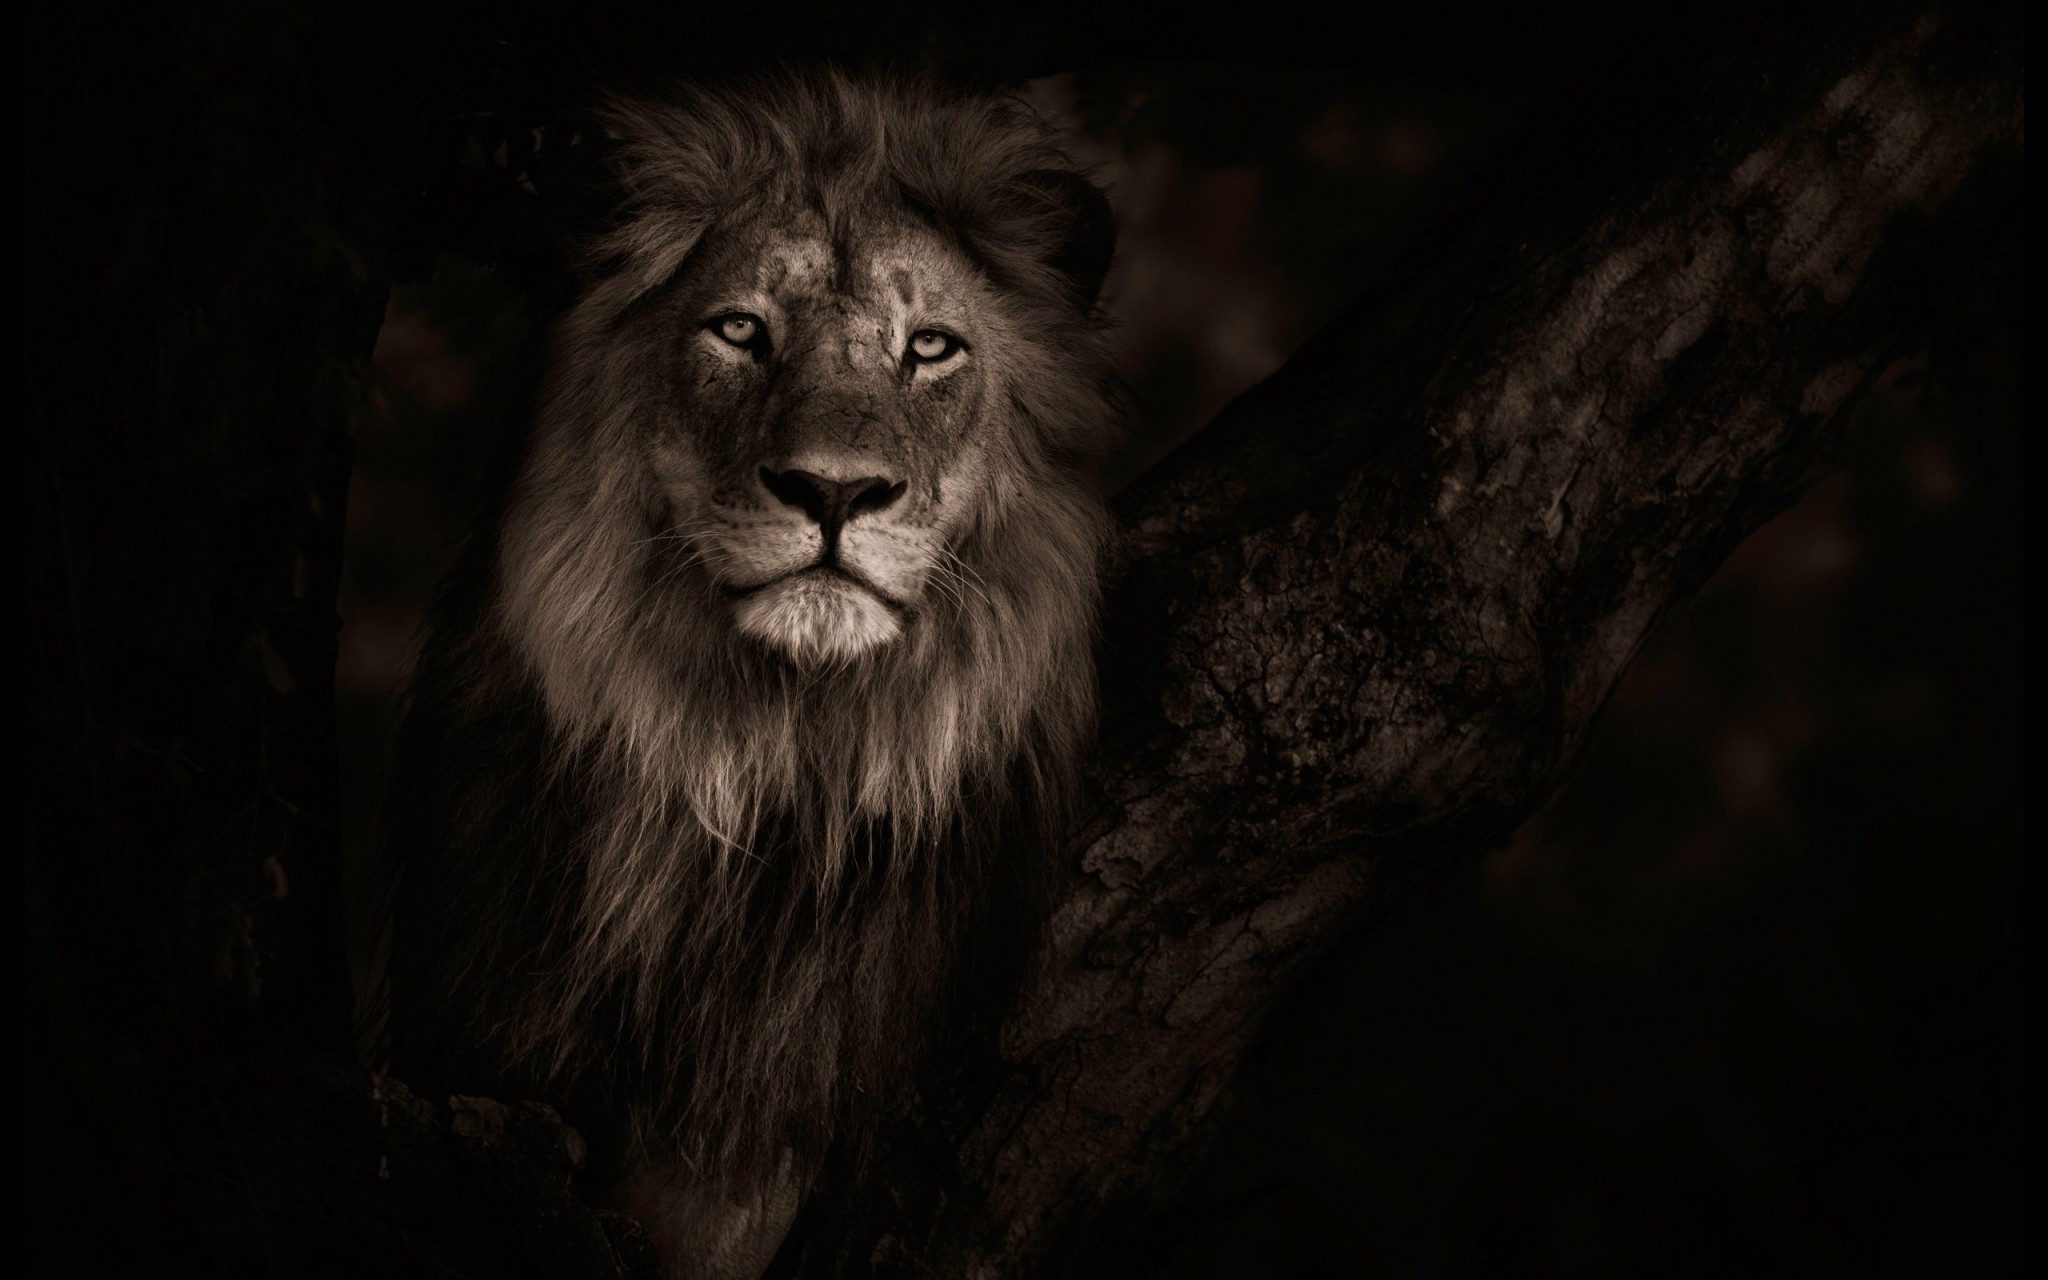 Lion Hd Wallpapers: Lion Background ·① Download Free Full HD Backgrounds For